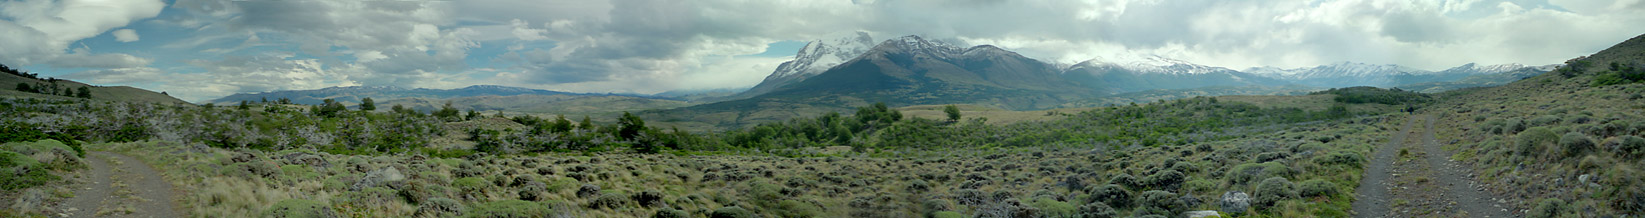 The Patagonia Steppe